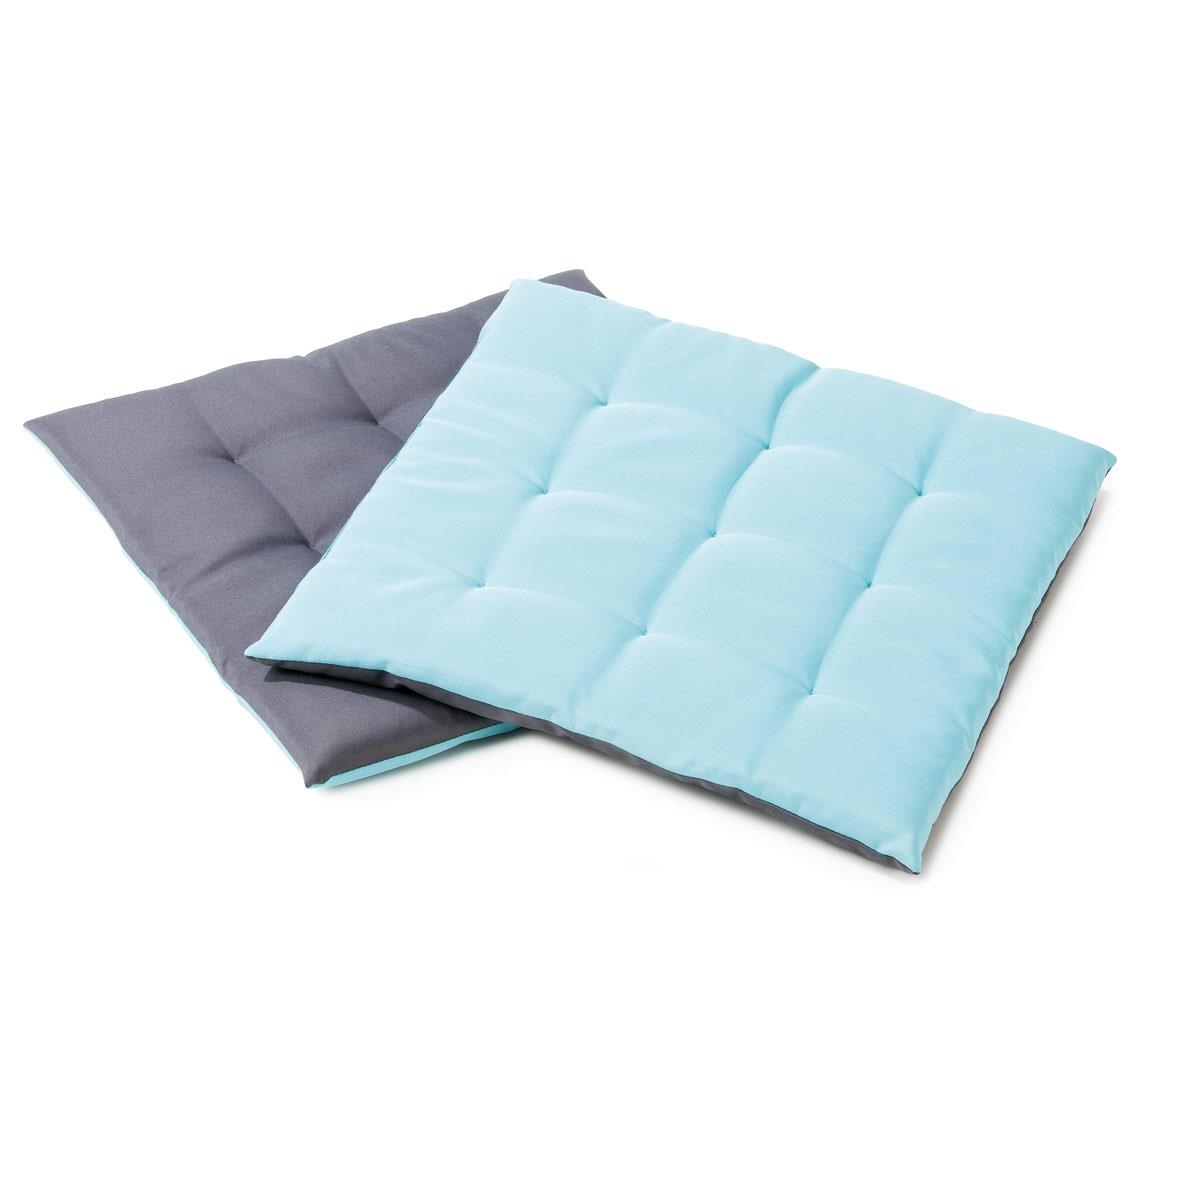 kmart chair cushions with leg support for outdoor furniture peenmedia